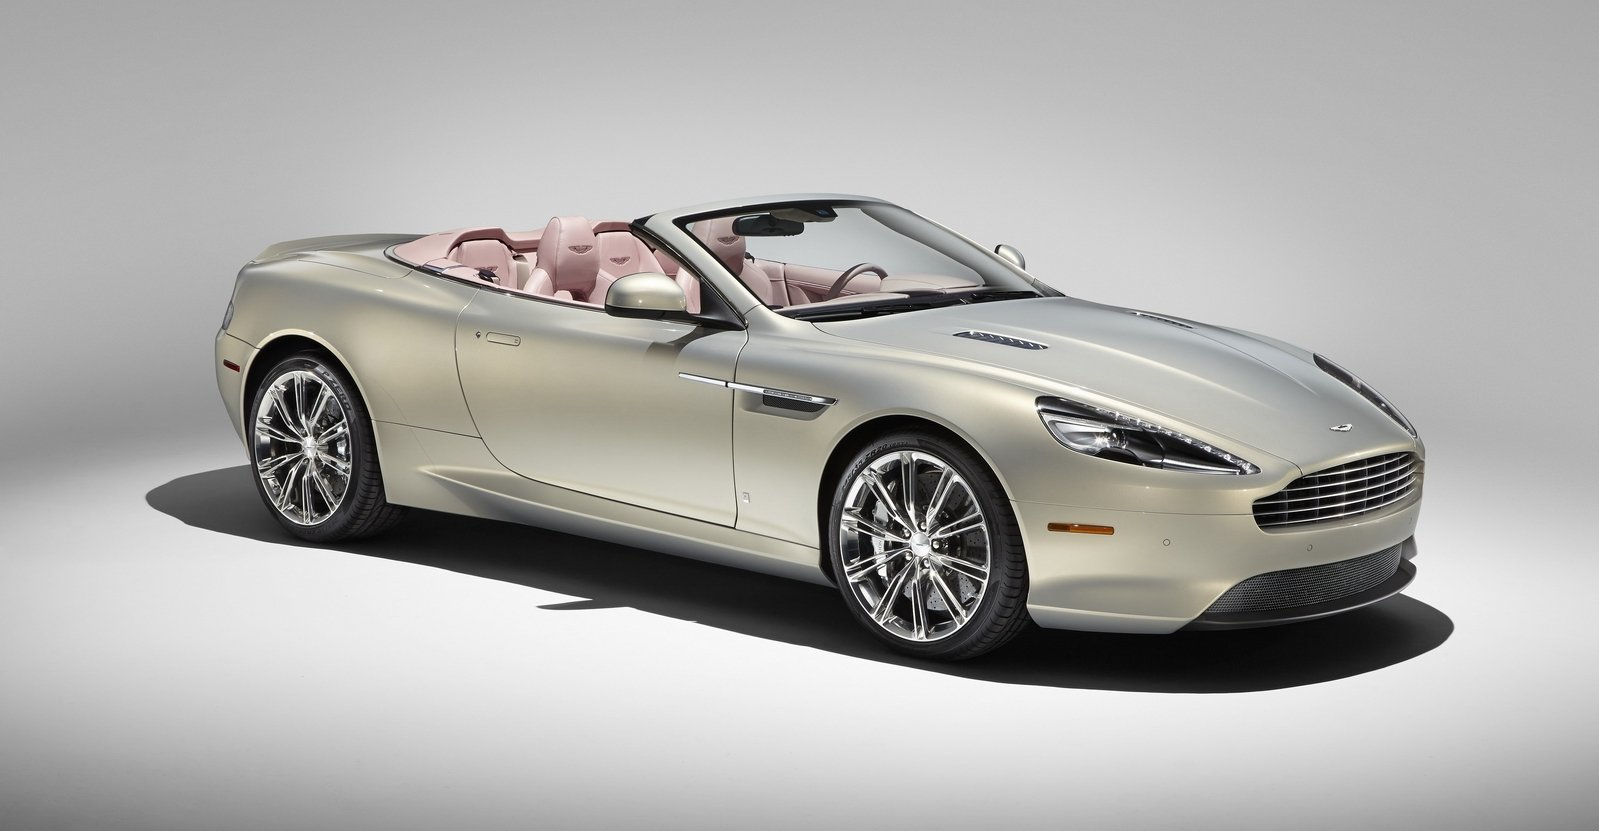 Concours D Elegance >> 2014 Aston Martin DB9 Volante By Q Review - Top Speed